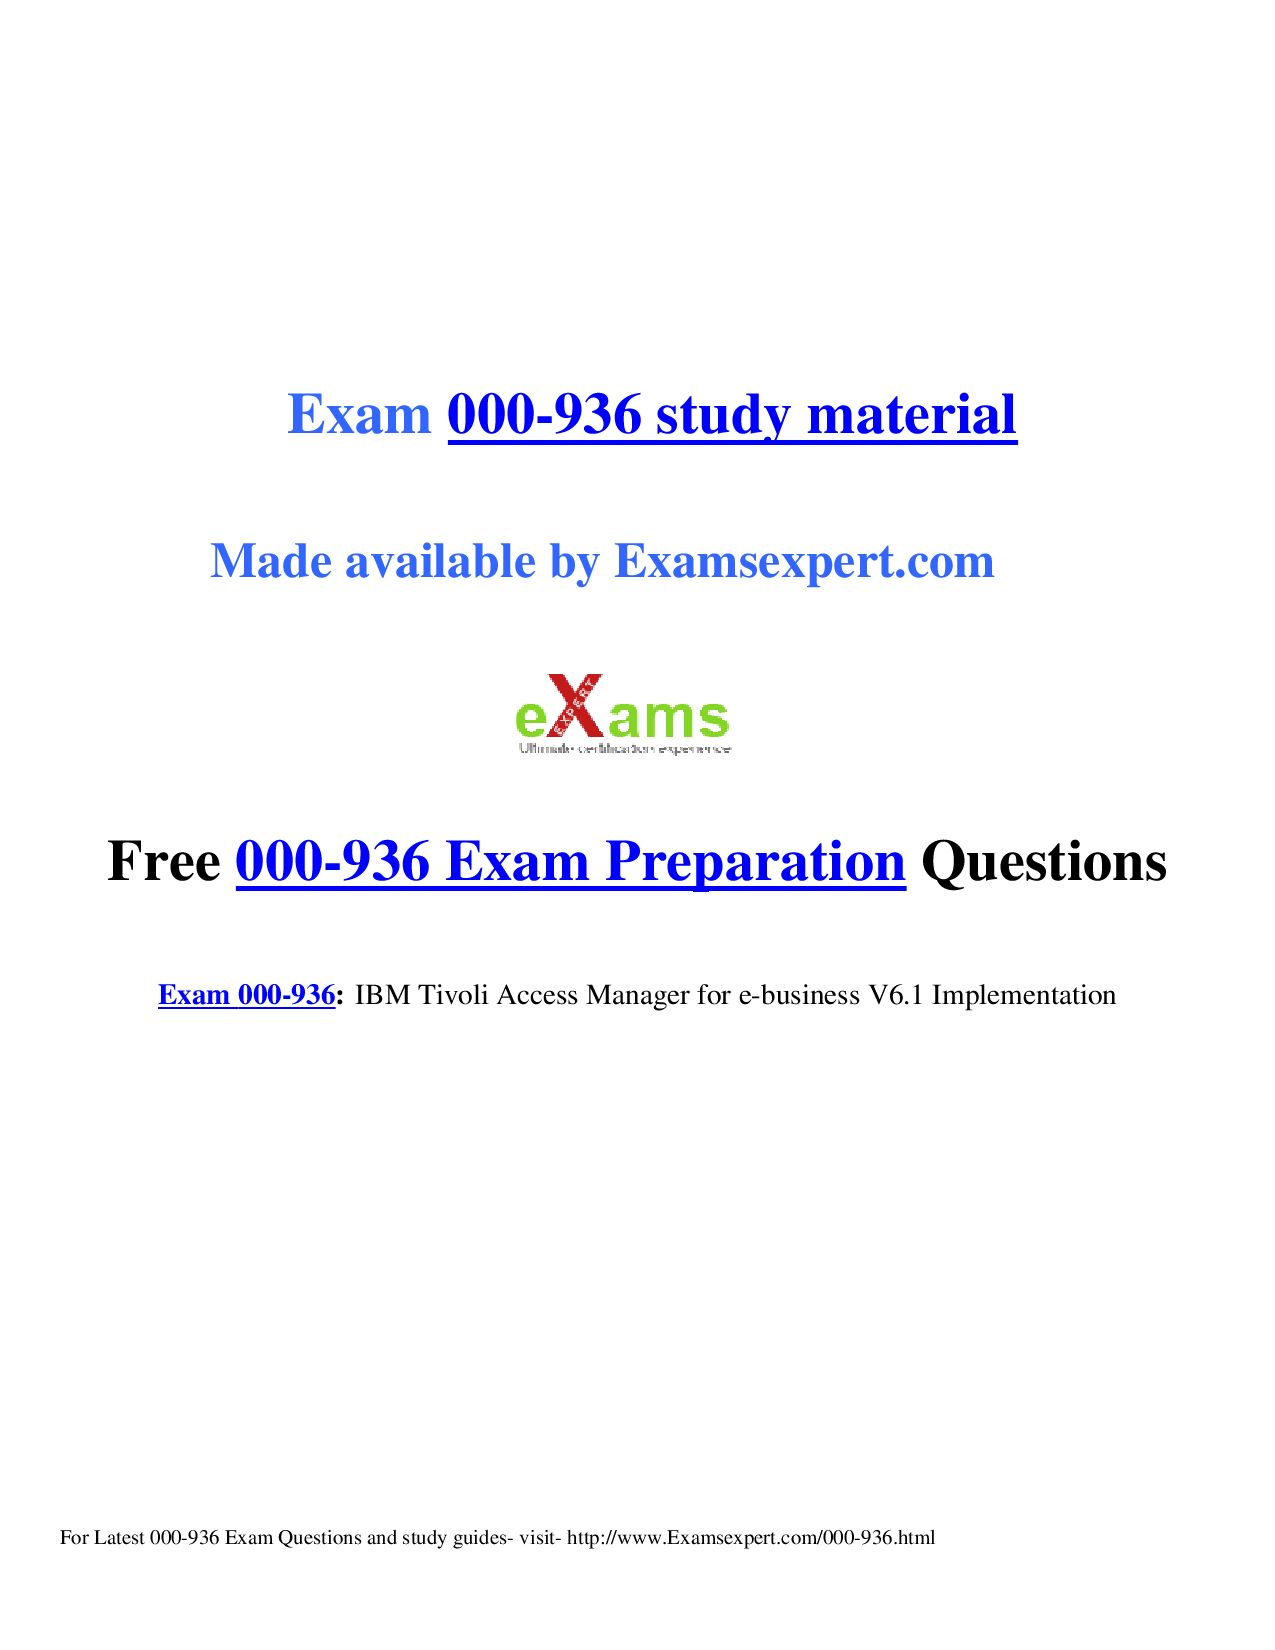 Tivoli Access Manager Session Management Server Exam 000 936 Preparation Questions By David Warner Issuu